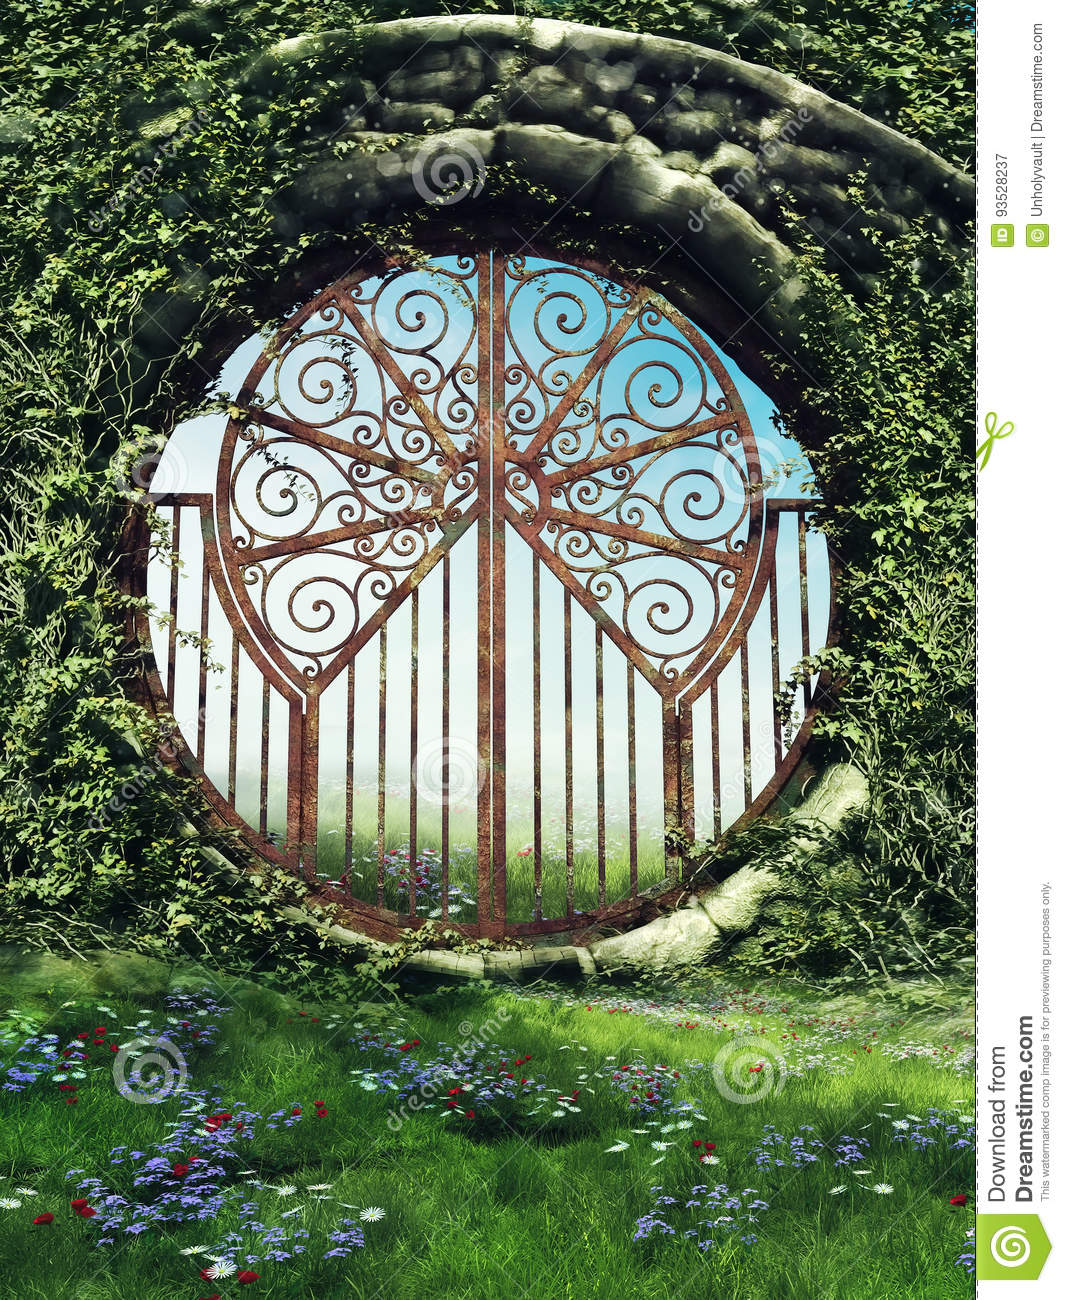 Fantasy gate in a garden